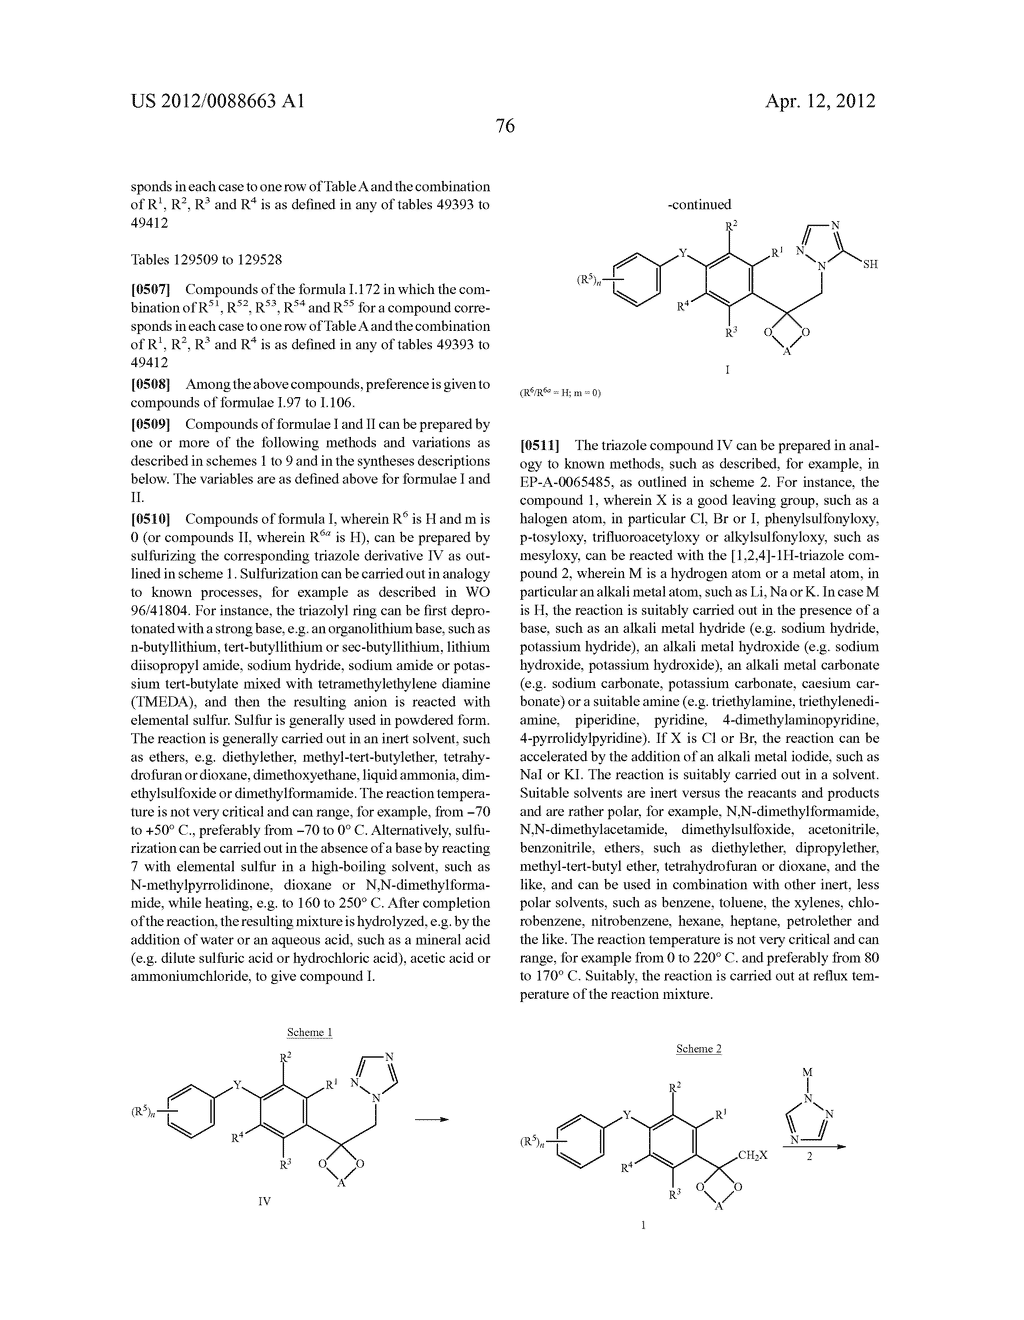 Triazole  Compounds Carrying a Sulfur Substituent - diagram, schematic, and image 77